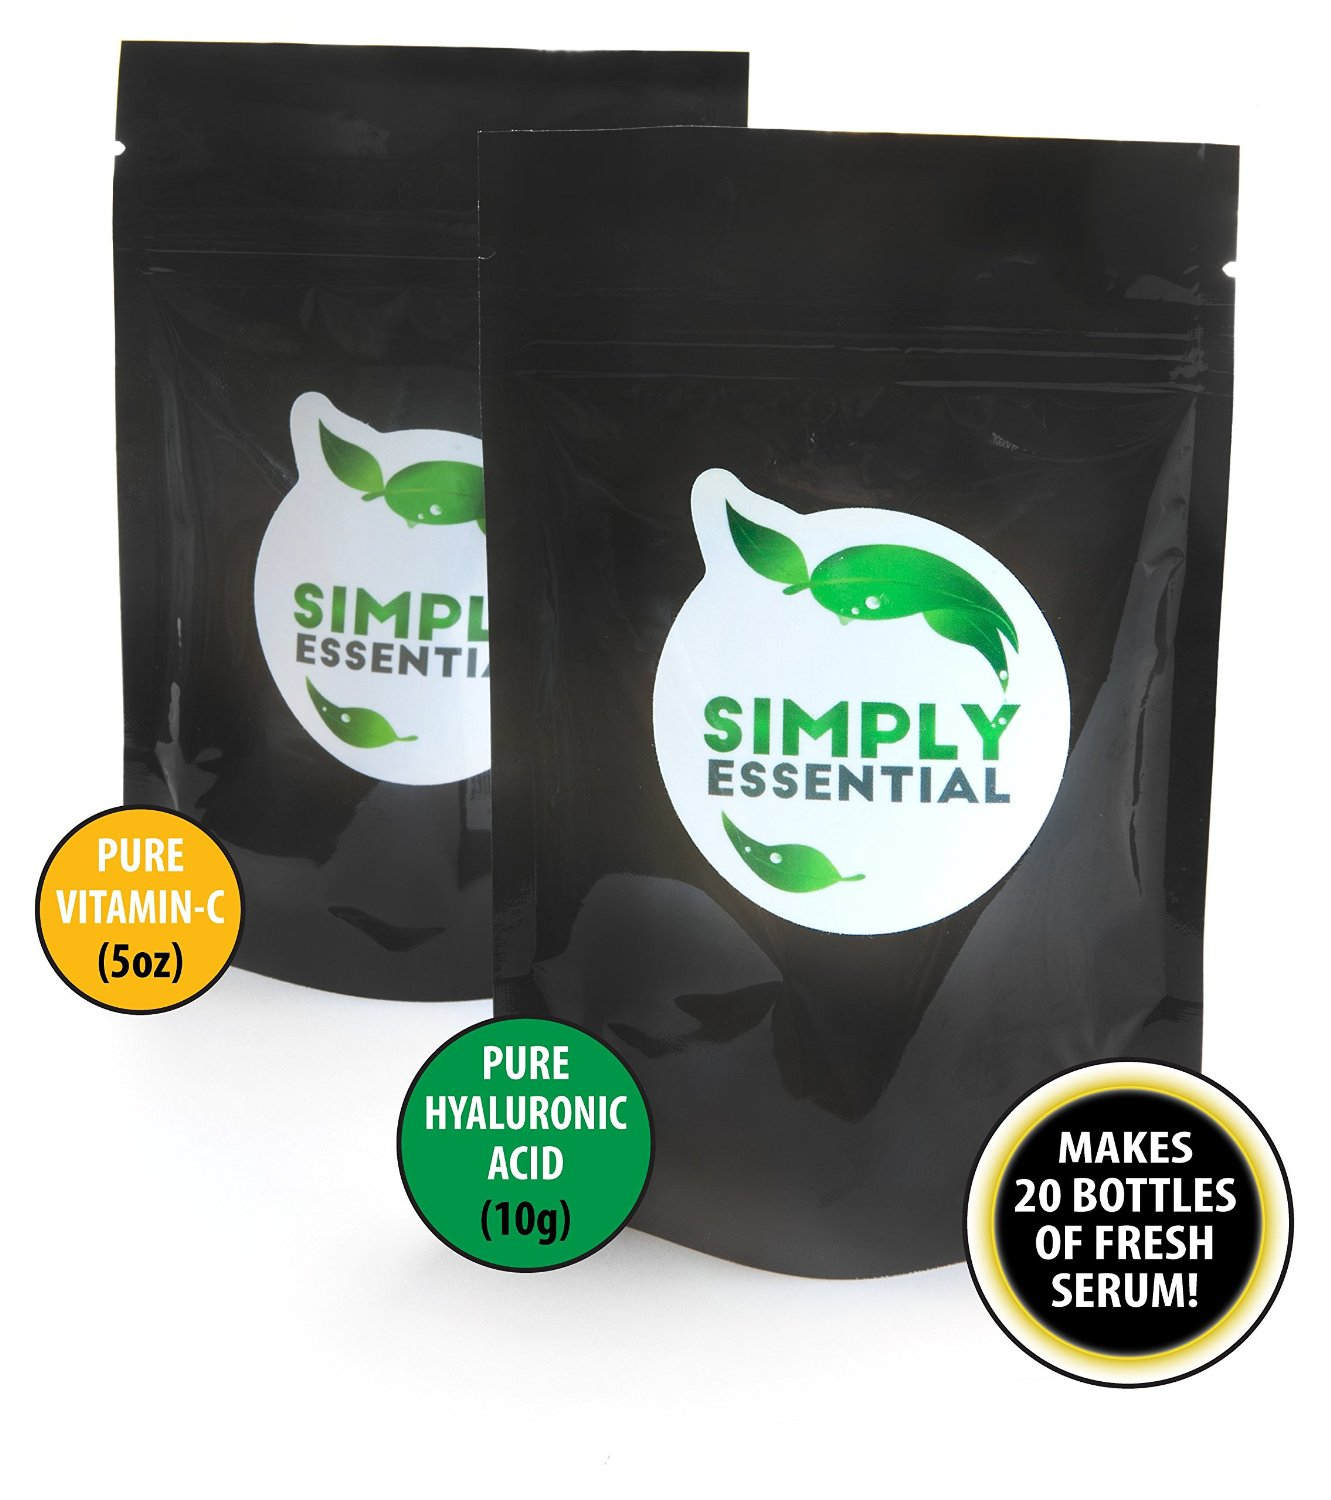 Simply Essential's **2-Powder Pack**| Ultra-Pure Hyaluronic Acid Powder & Ultra-Pure Vitamin-C Crystals | Makes 20 bottles of amazingly fresh serum!